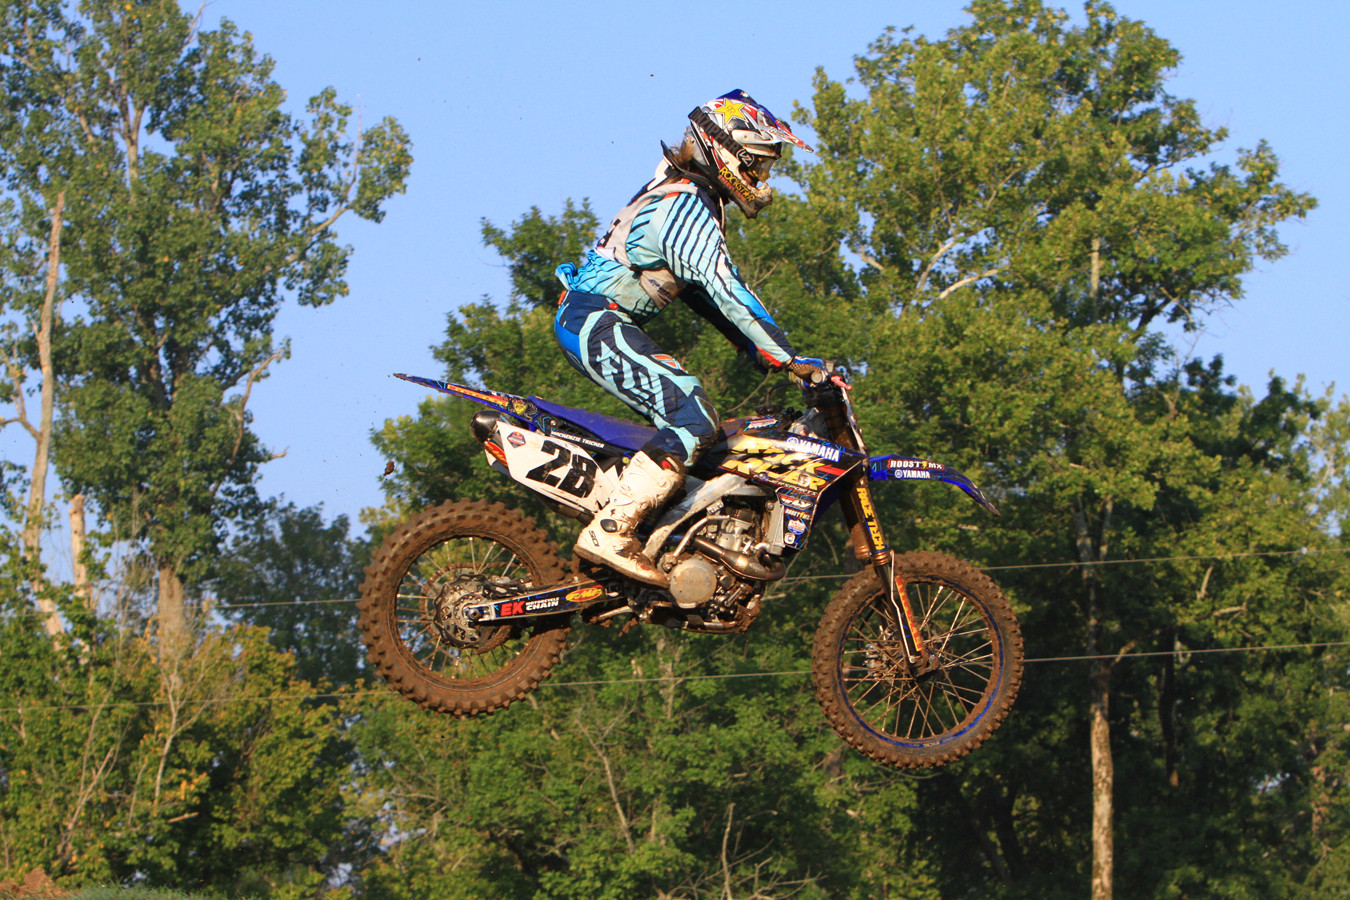 Mackenzie Tricker - Day 3: 2012 Red Bull AMA Amateur National Motocross Championships - Motocross Pictures - Vital MX